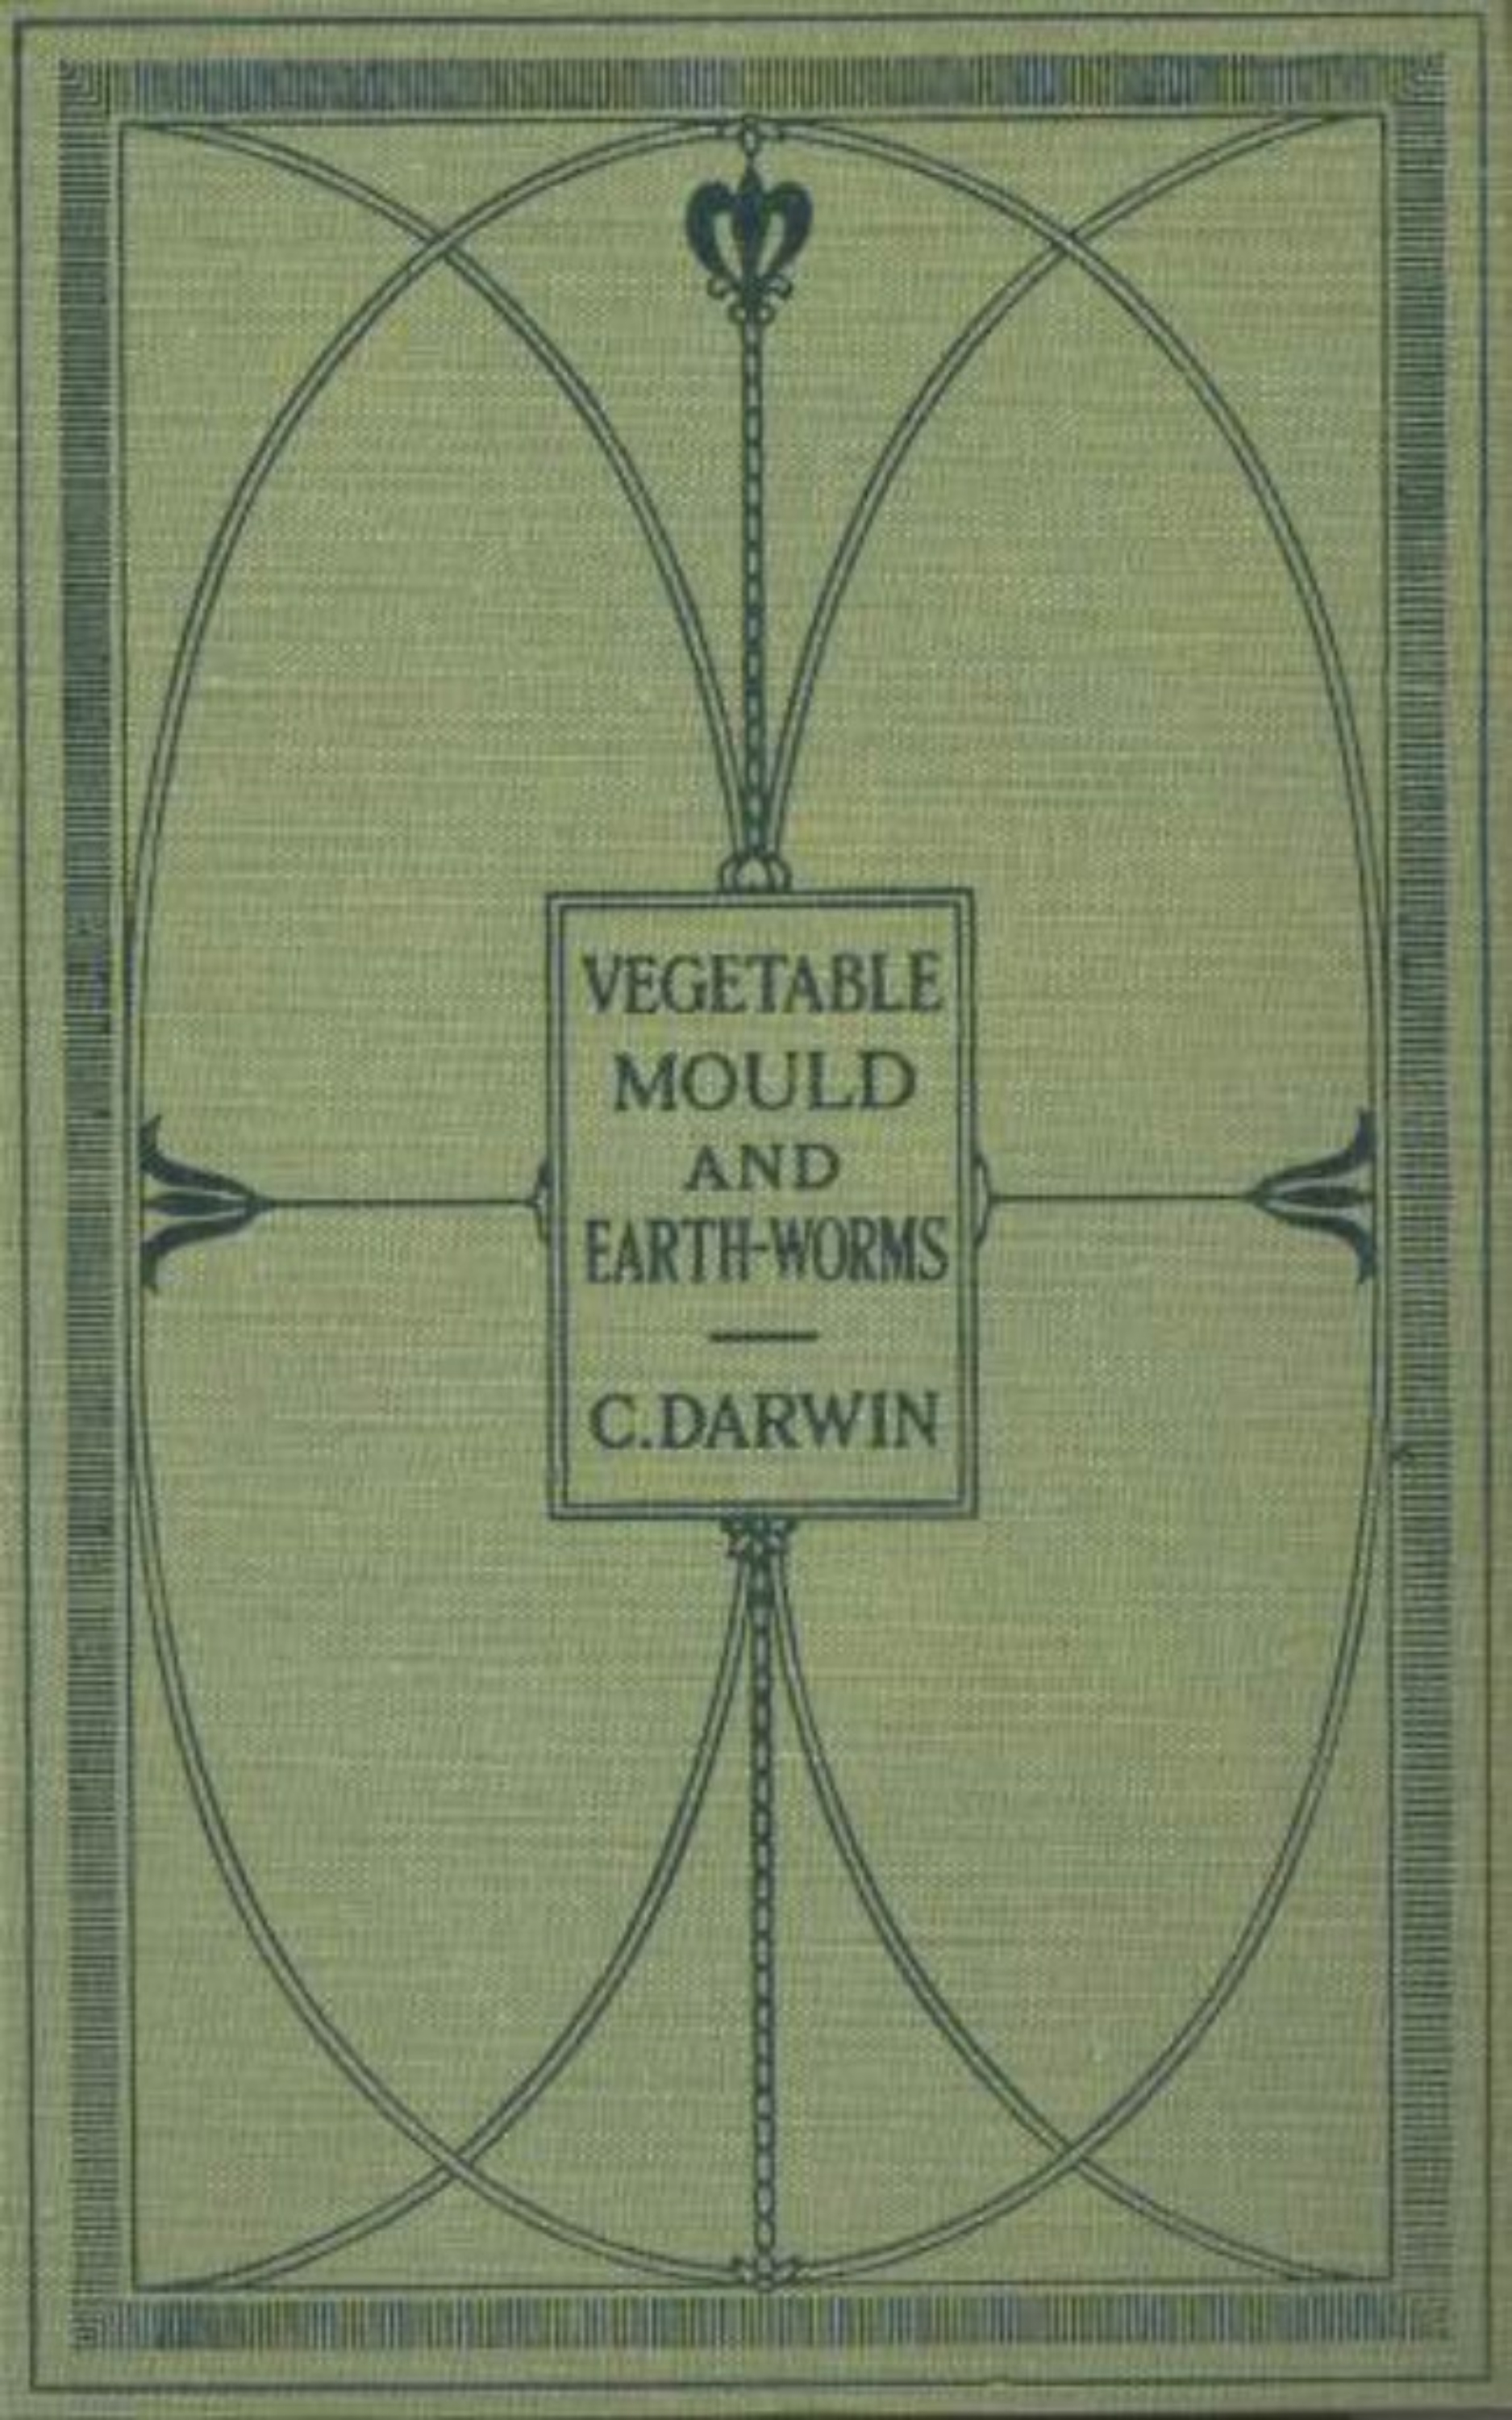 Charles Darwin The Formation of Vegetable Mould Through the Actth Observations on Their Habits effect of some heavy metal salts on the formation of ettringite